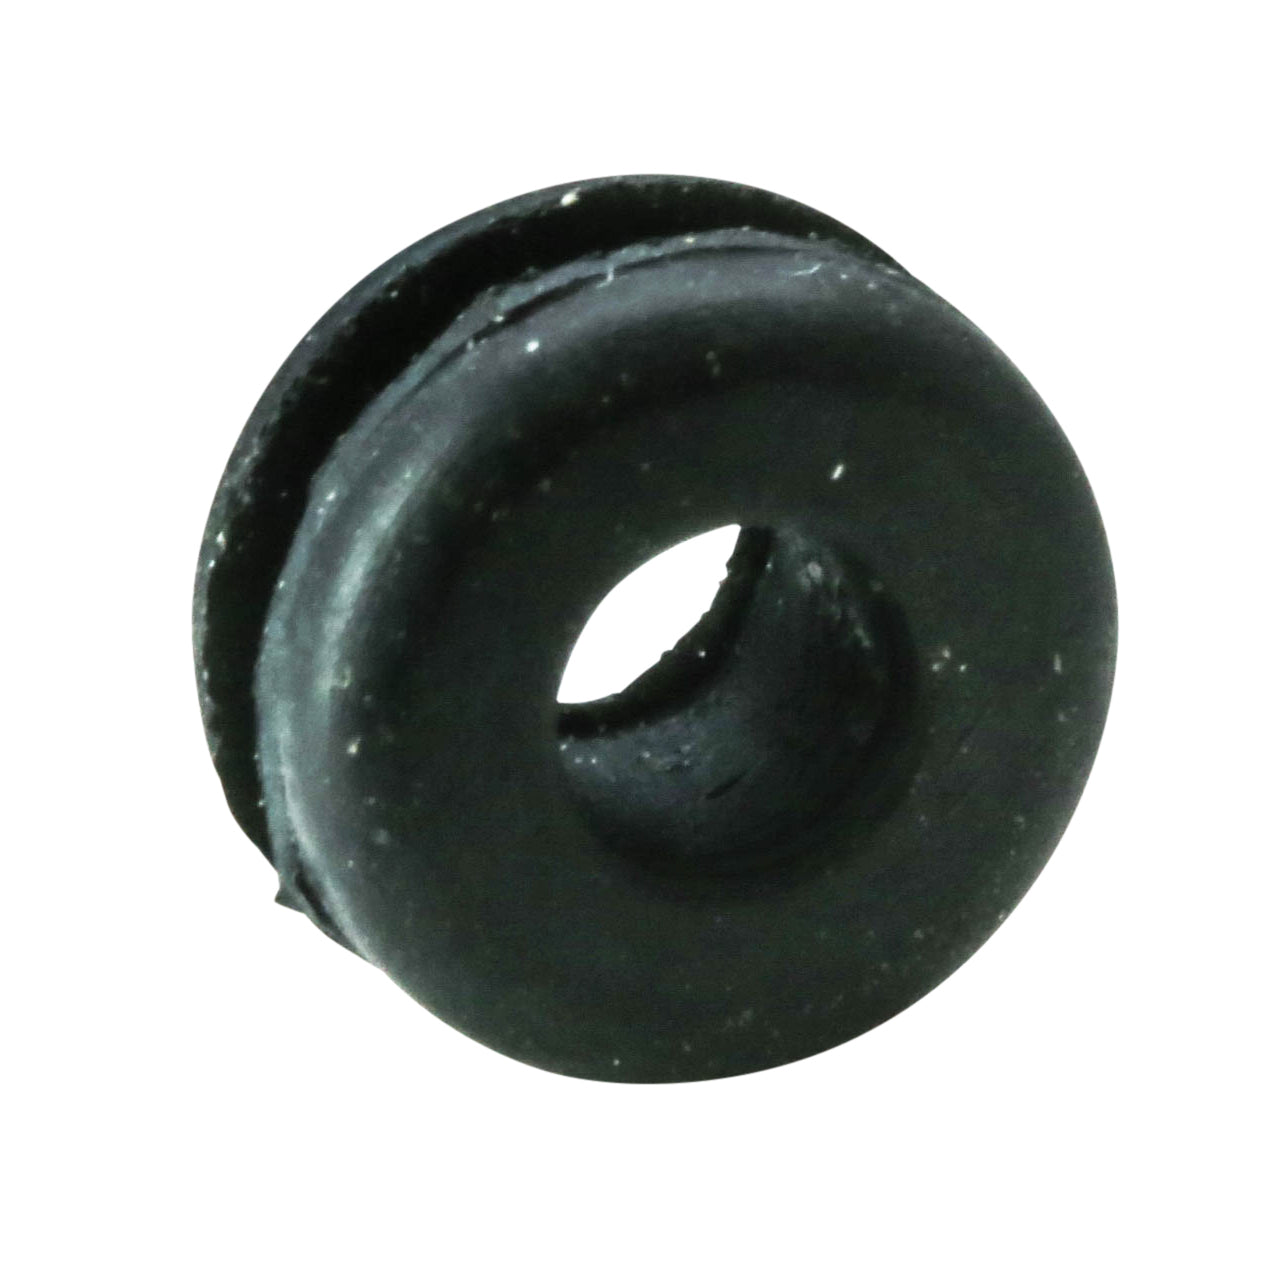 Windshield Wiper Rod Grommet • 1937-40 Ford